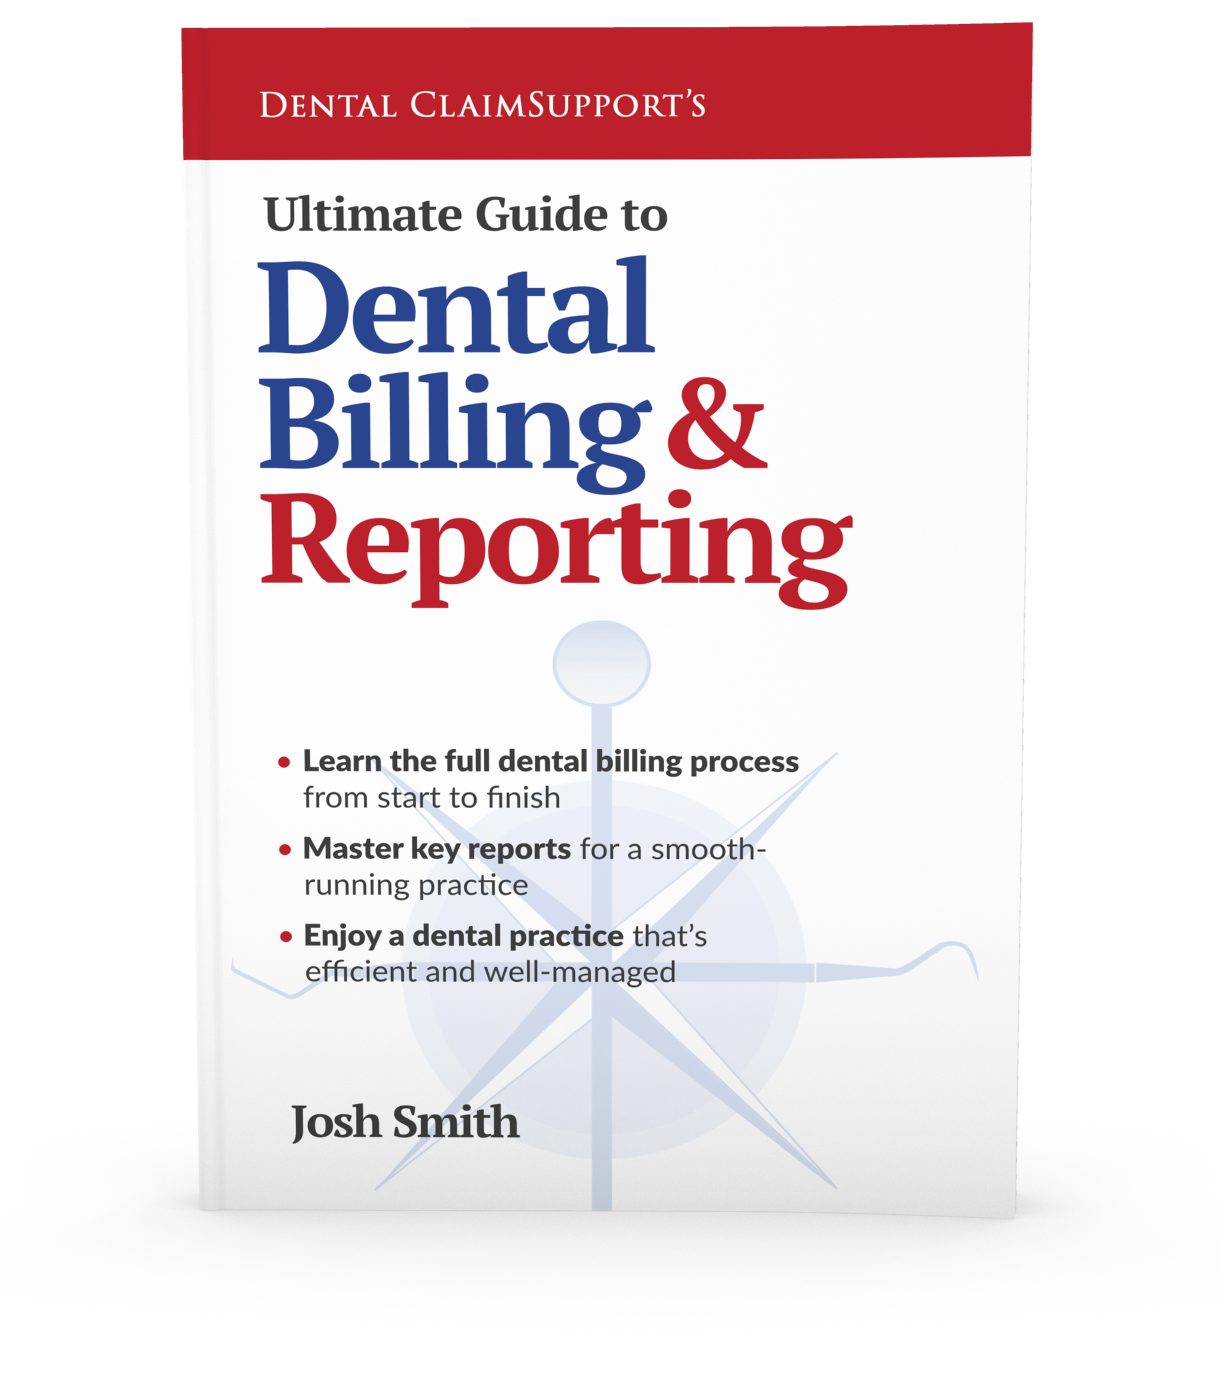 Ultimate Guide to Dental Billing and Reporting by Josh Smith